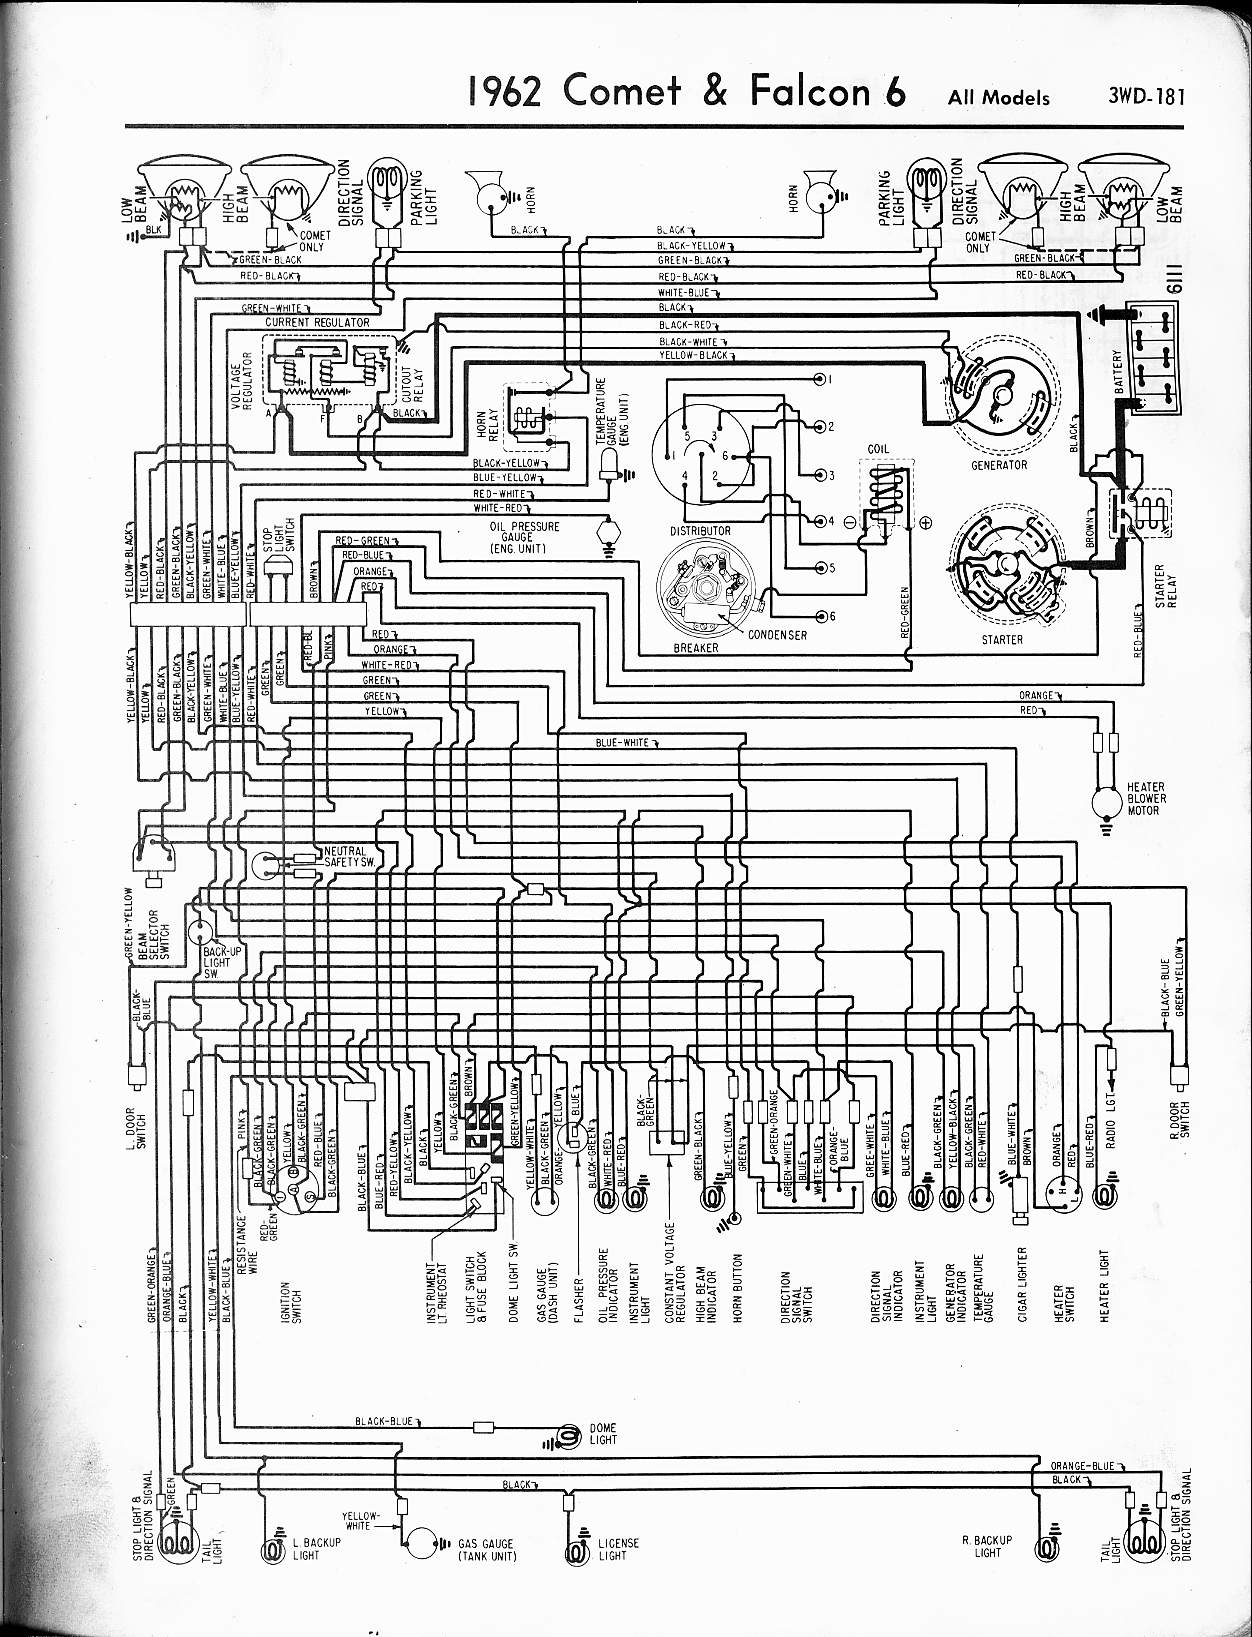 Ford Truck Radio Wiring Diagram Detailed Schematic Diagrams F150 1964 Car Wire Electrical Schematics 1946 57 65